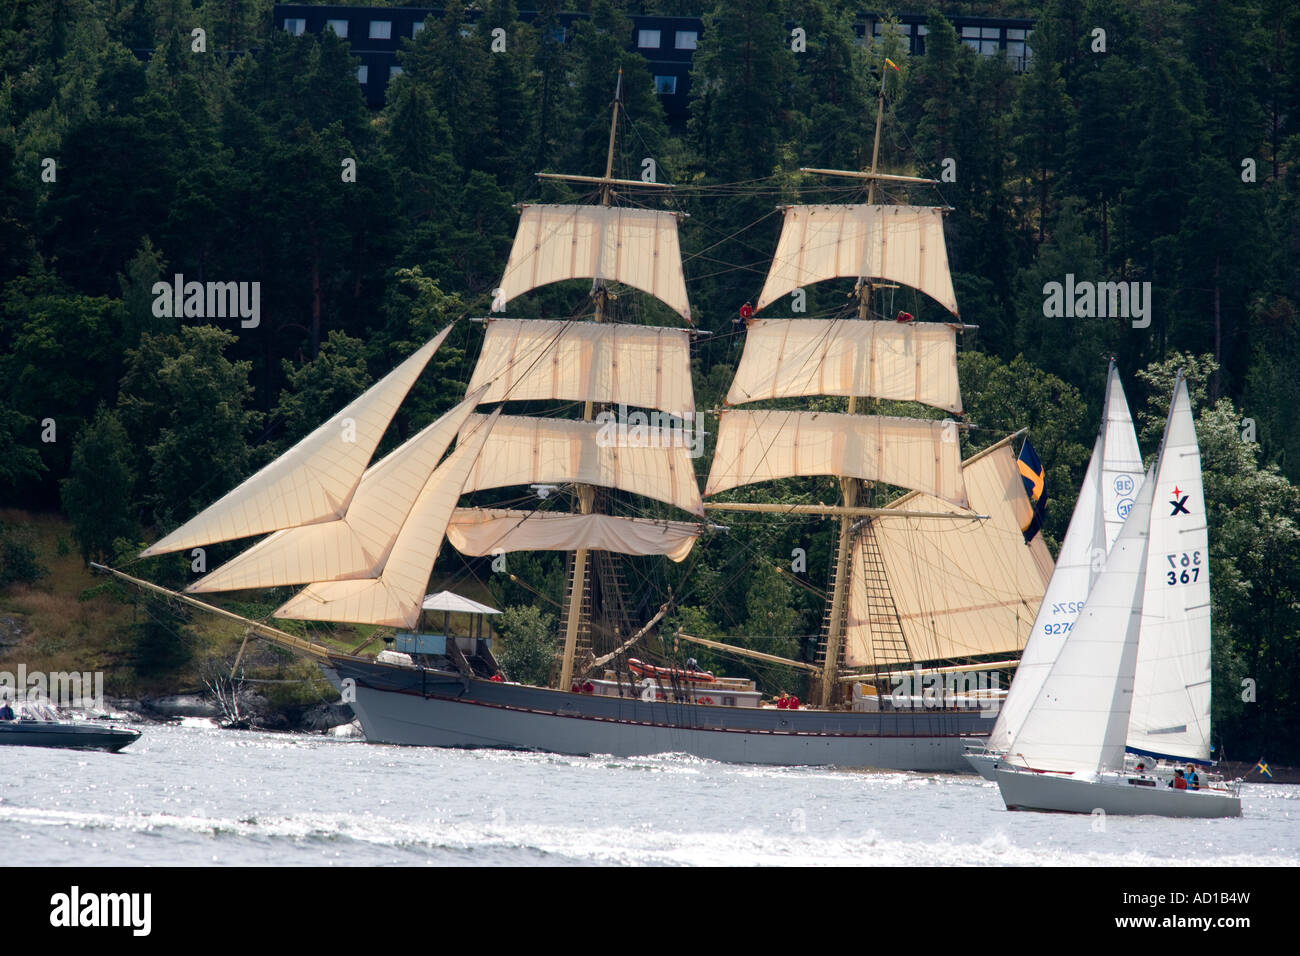 Tall ships race Stockholm 2007 - Stock Image